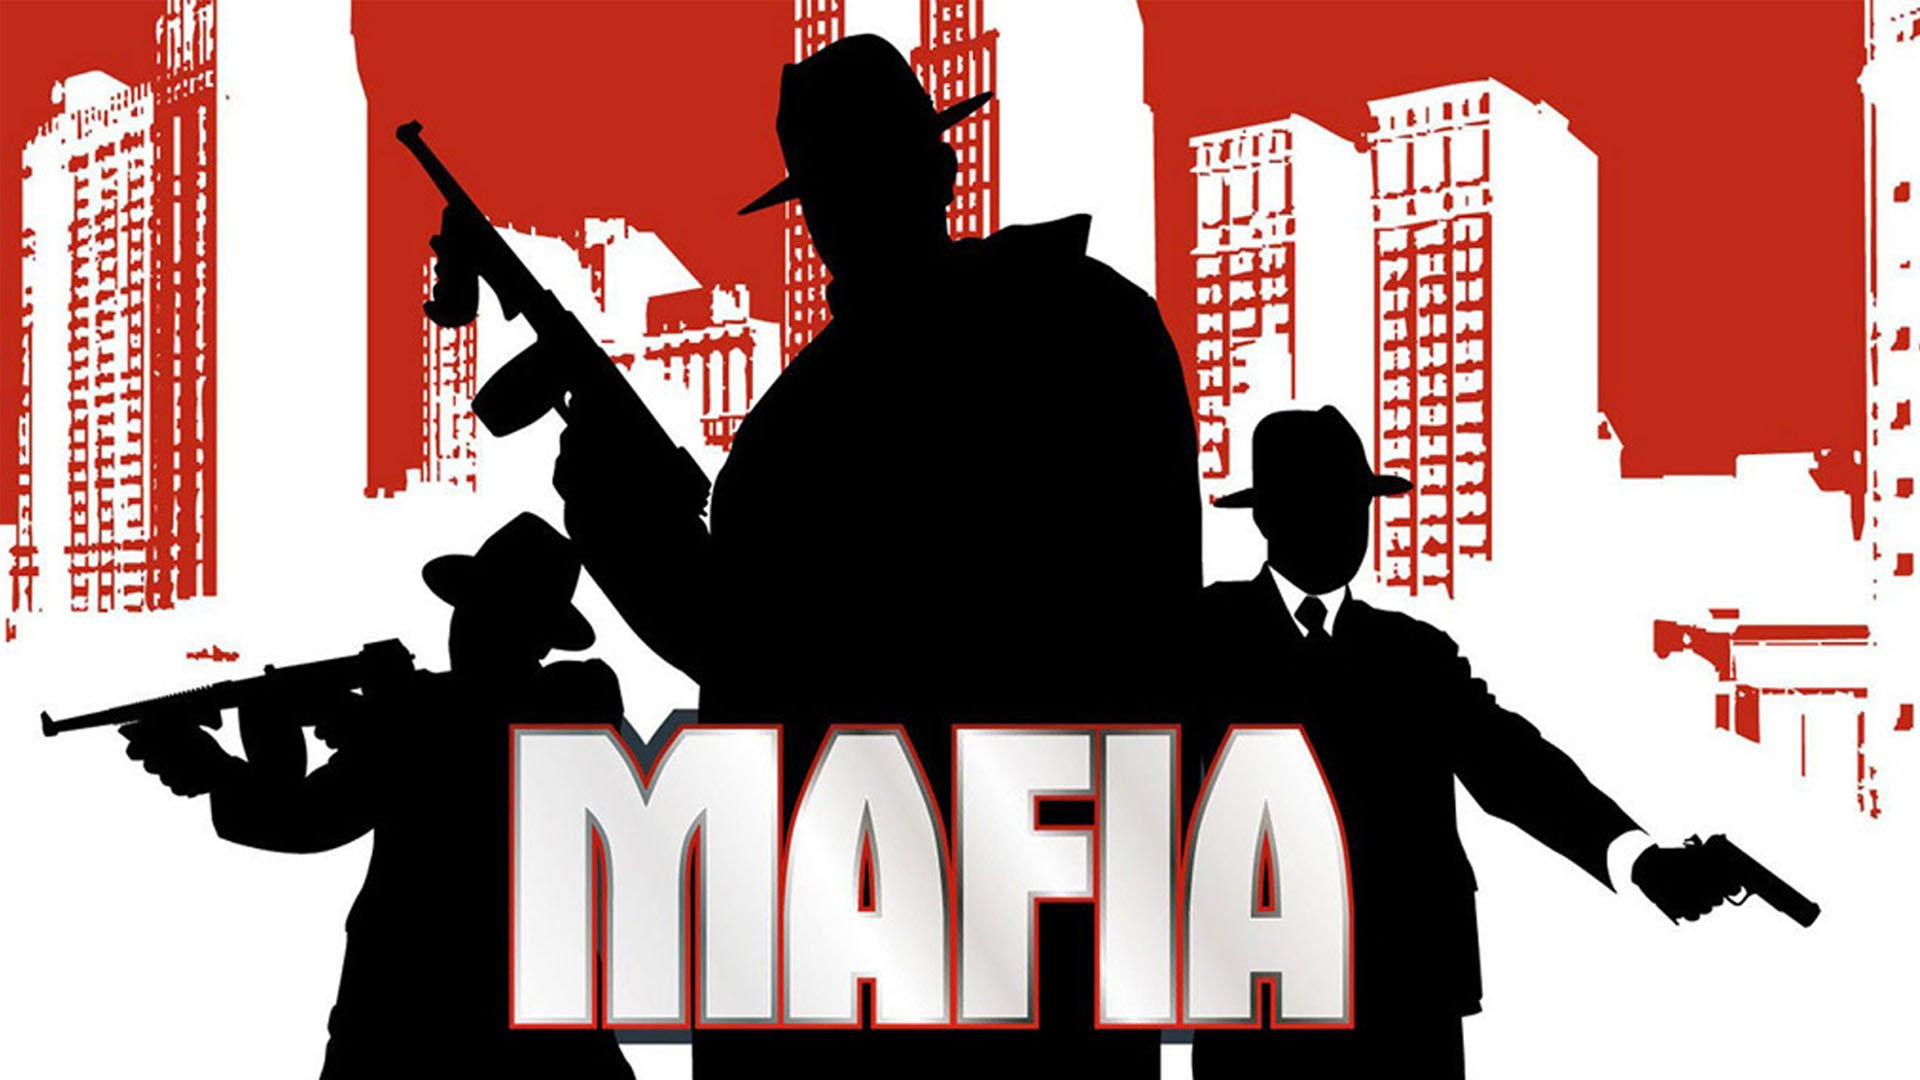 Арт к игре Mafia: The City of Lost Heaven